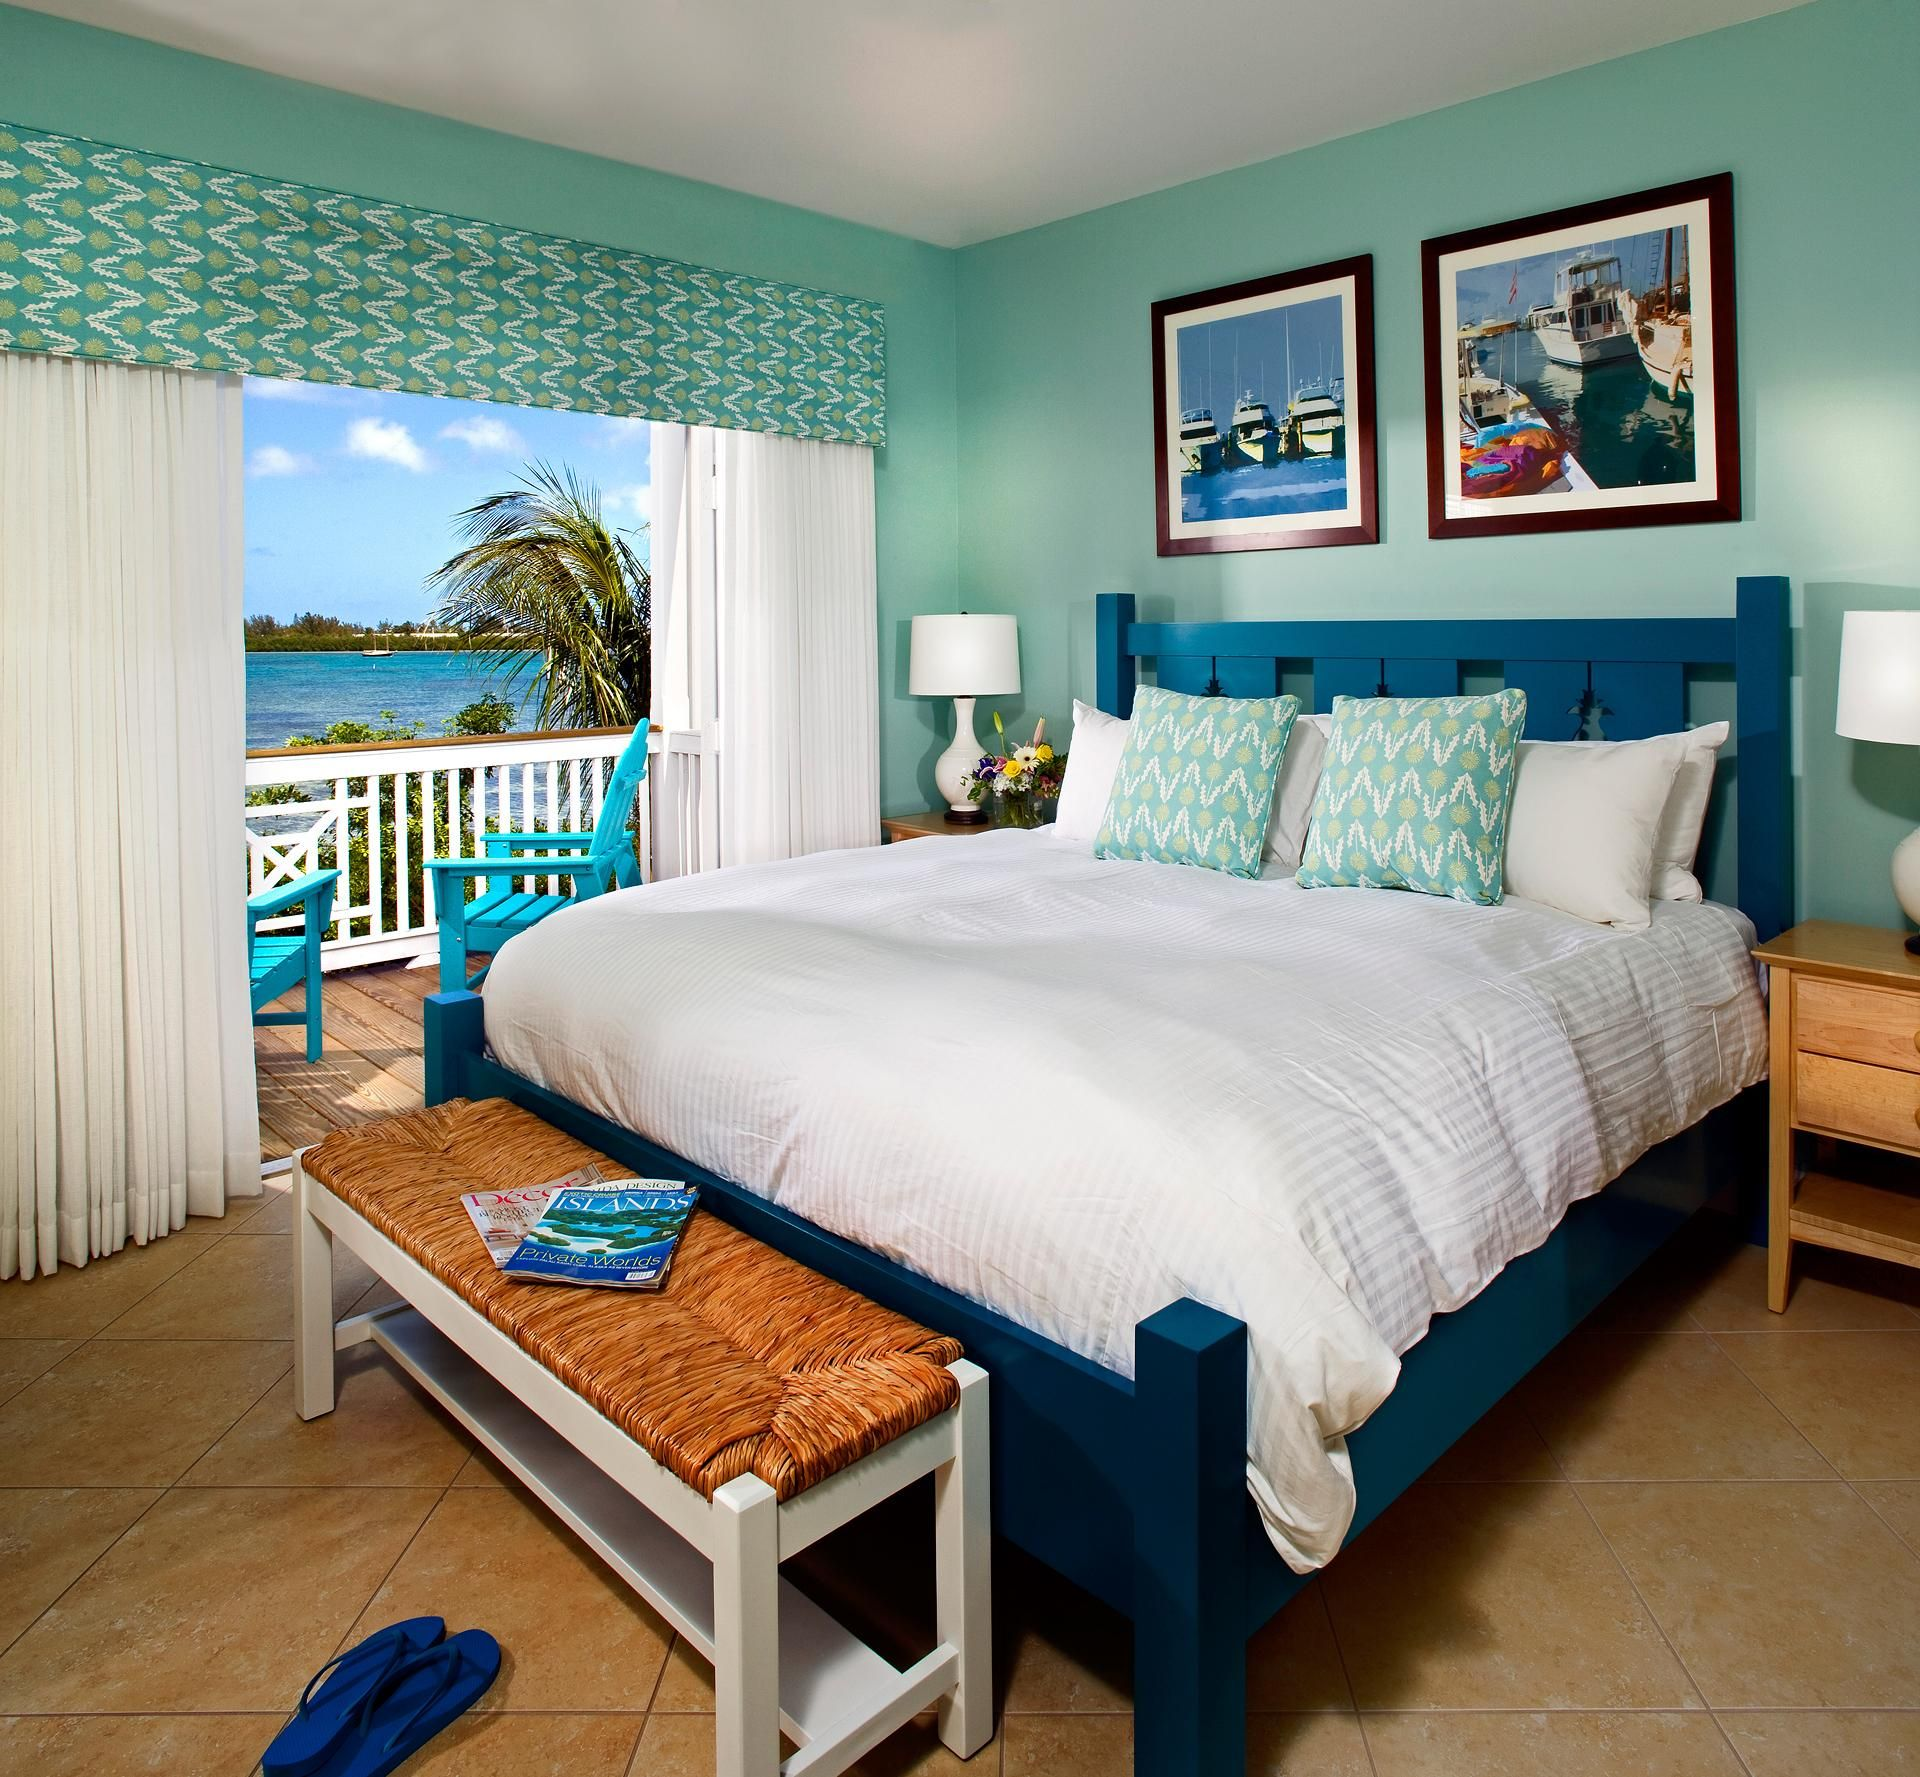 Key West Boutique Hotel Parrot Key Resort Hospitality Design Pinterest Key West Resorts